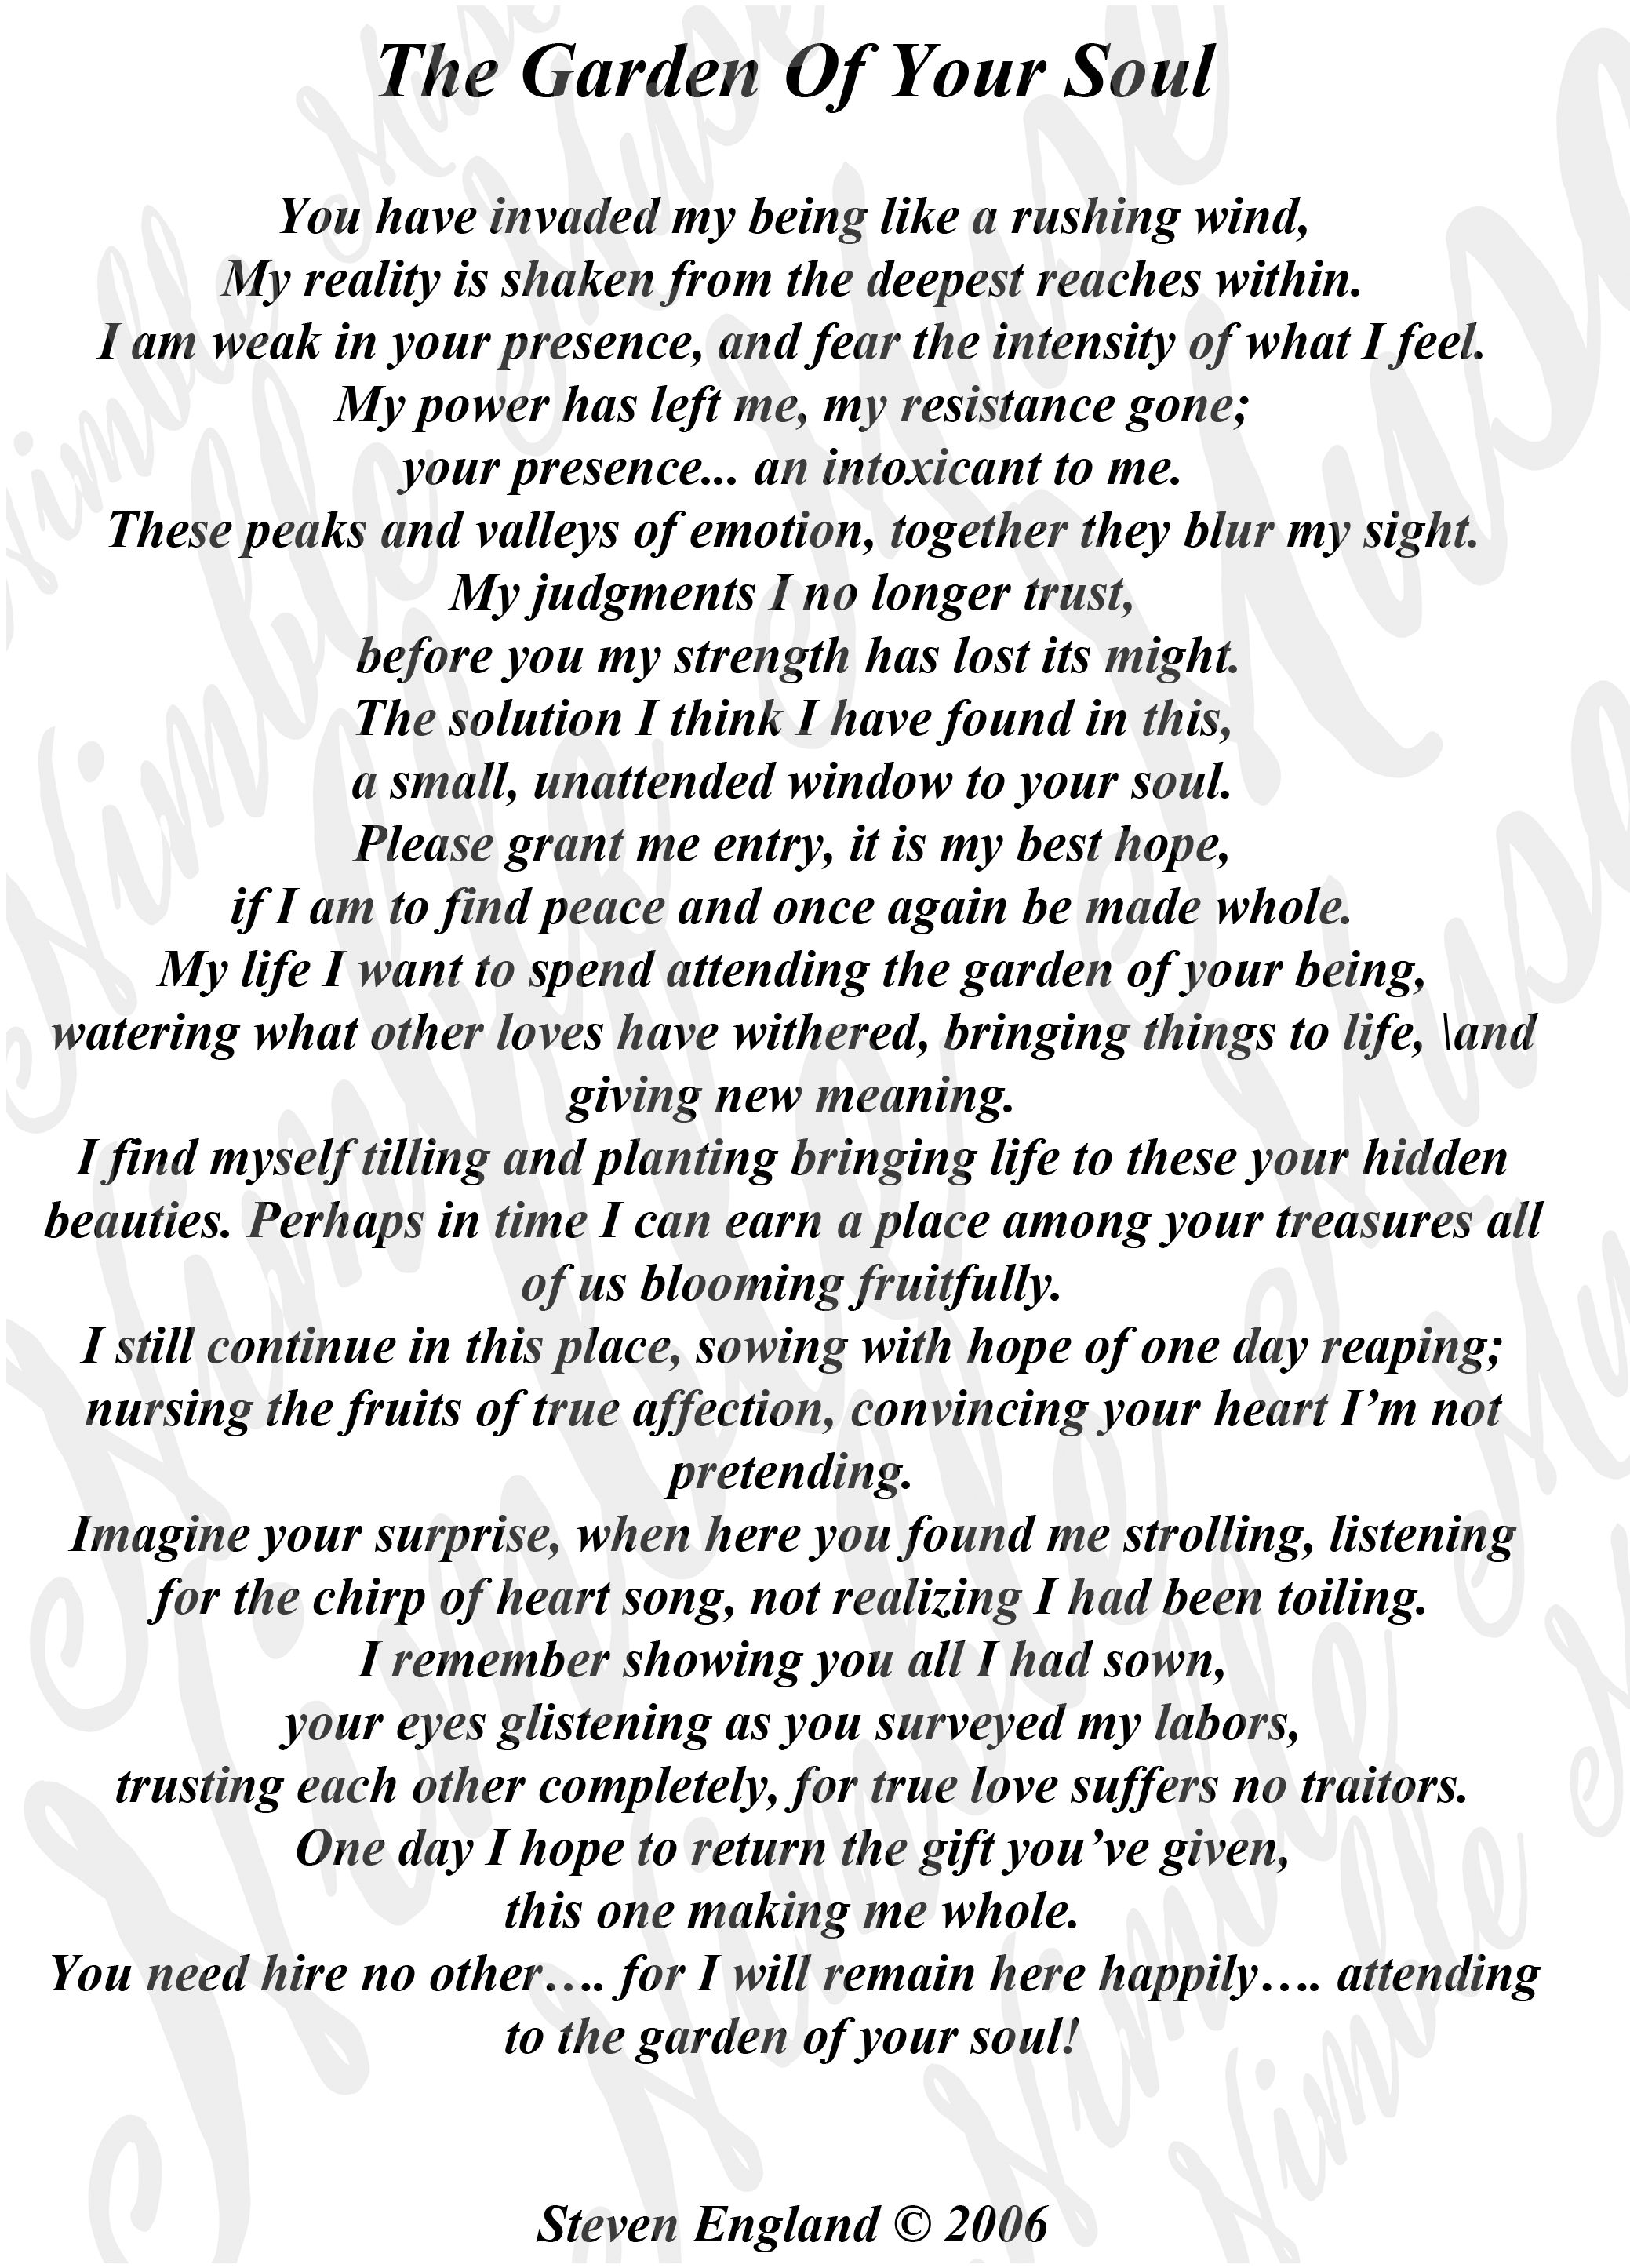 Original Poems Personal And Commercial Use Christian Wedding Personalized DIY Gifts Greeting Cards Poetry Print